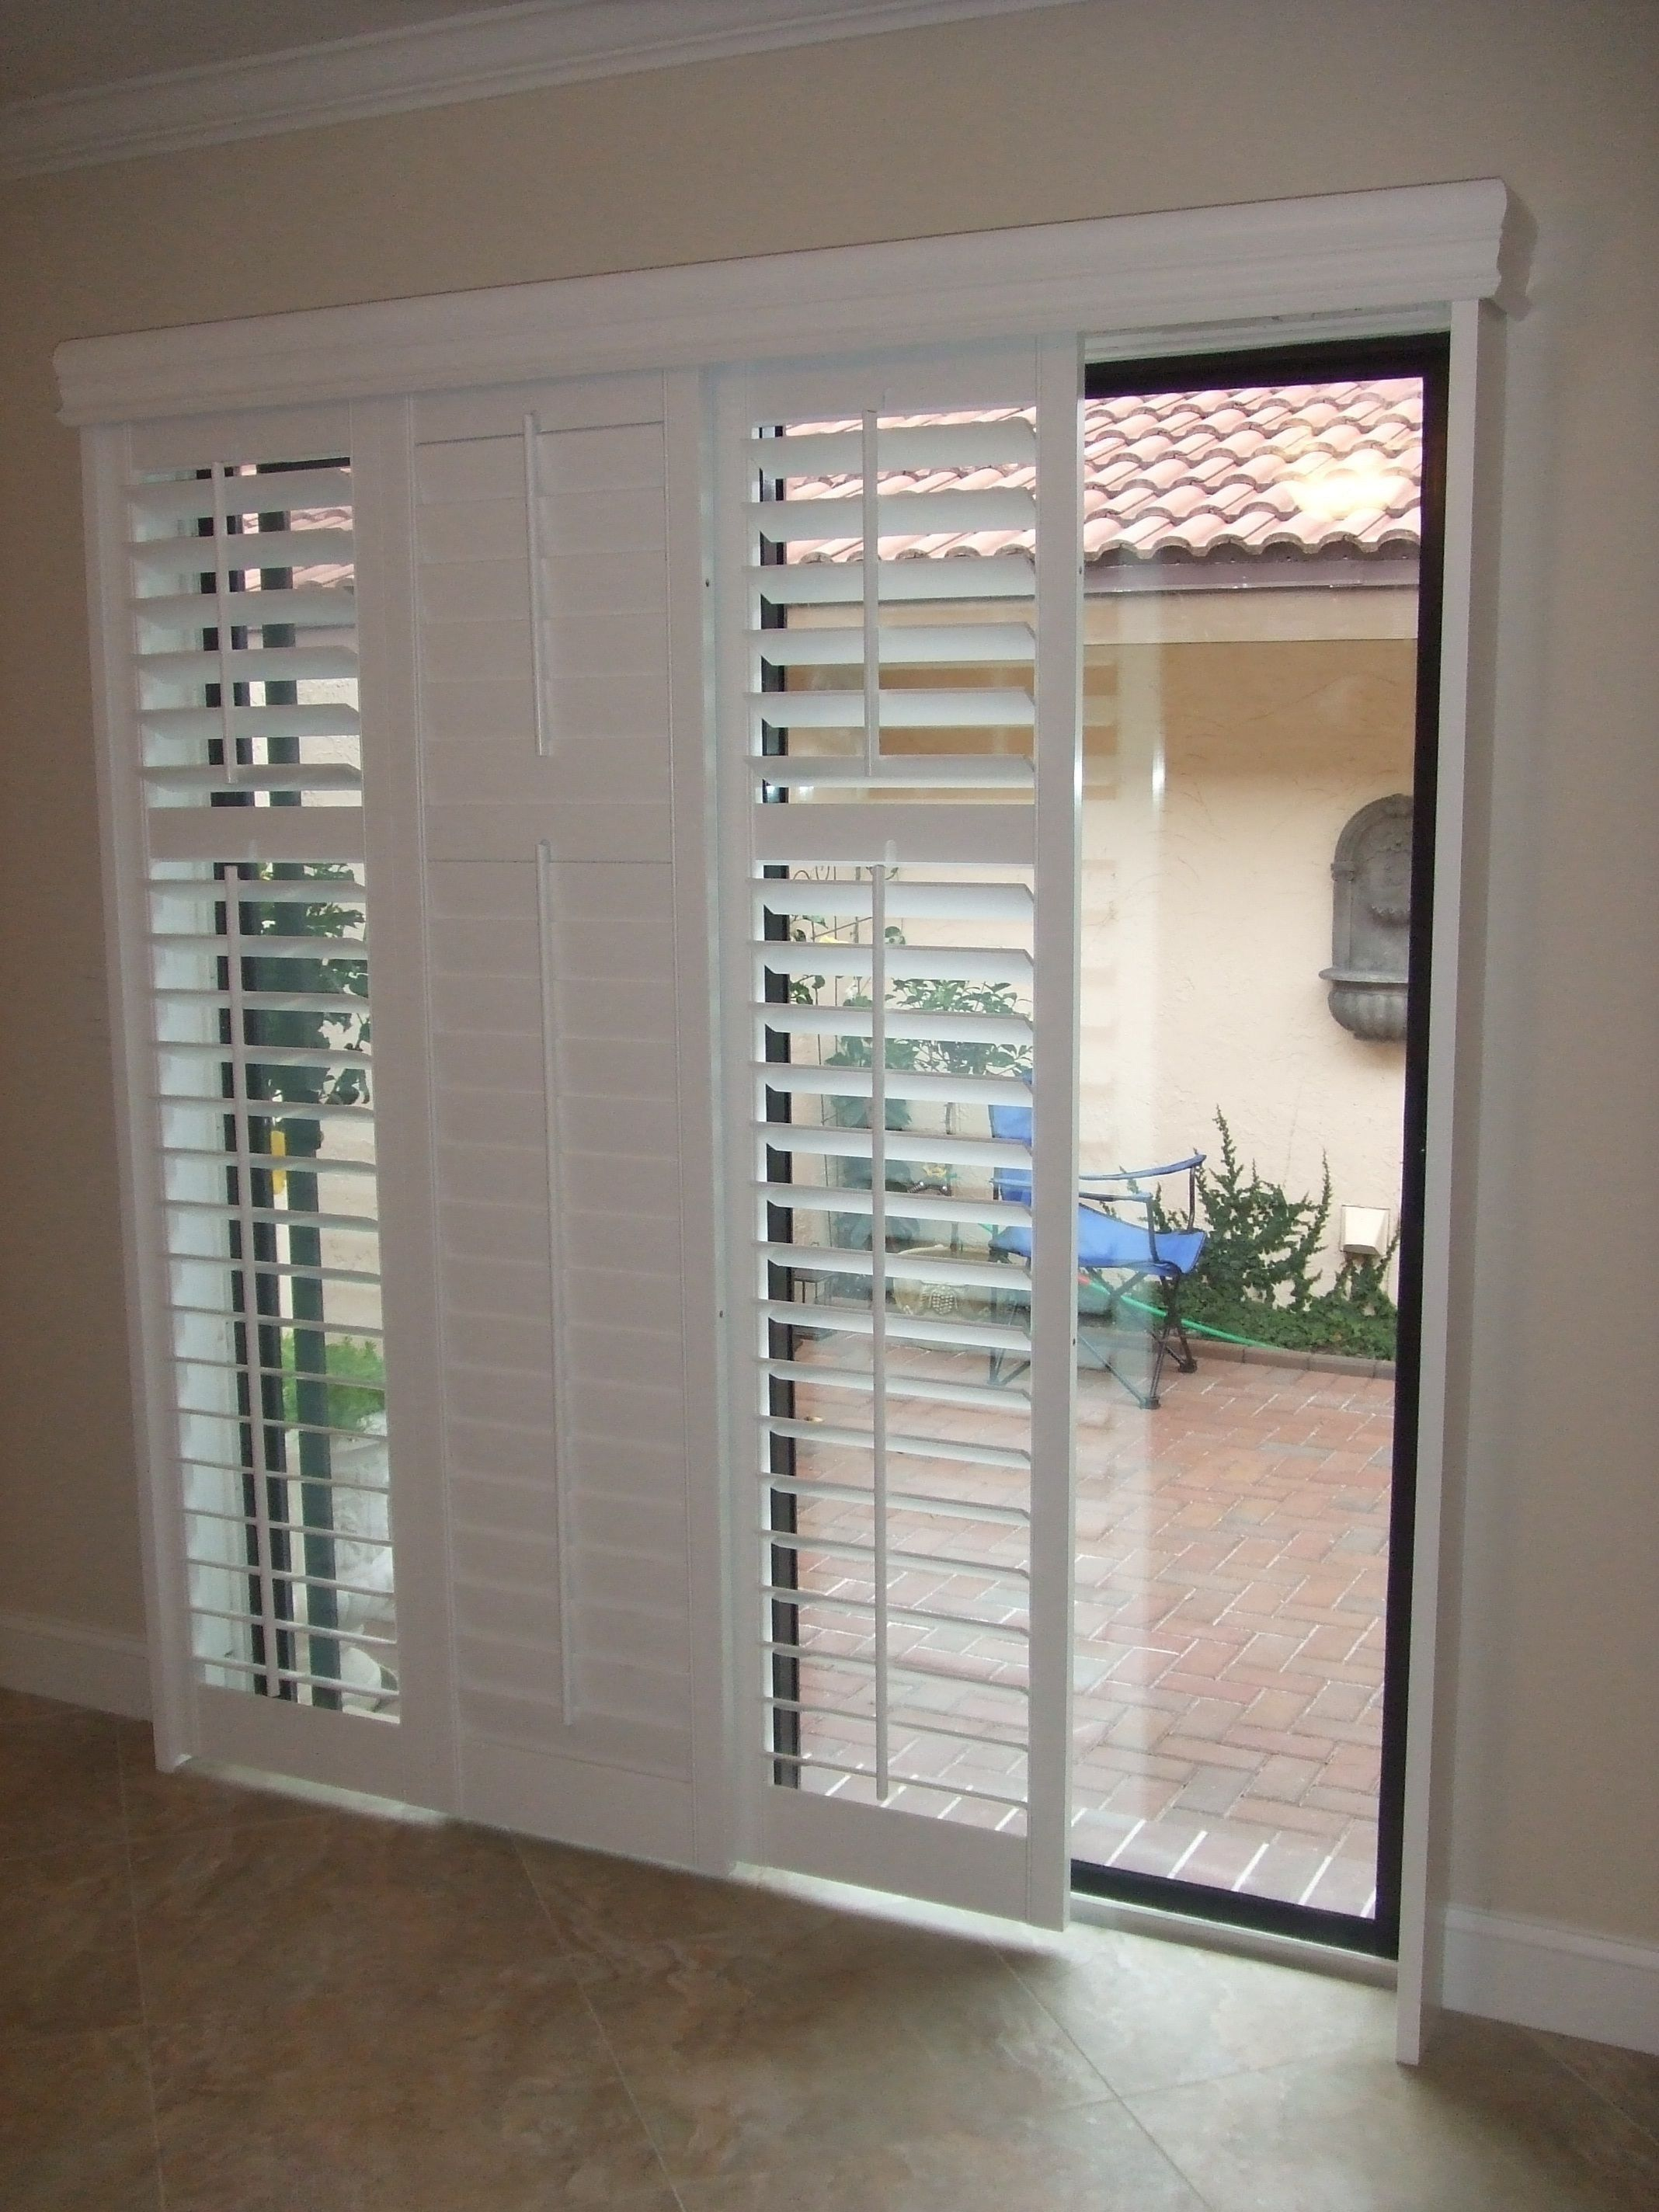 Best Furniture Ideas Ever Glass Doors Patio Sliding Glass Doors Patio Sliding Glass Door Shutters